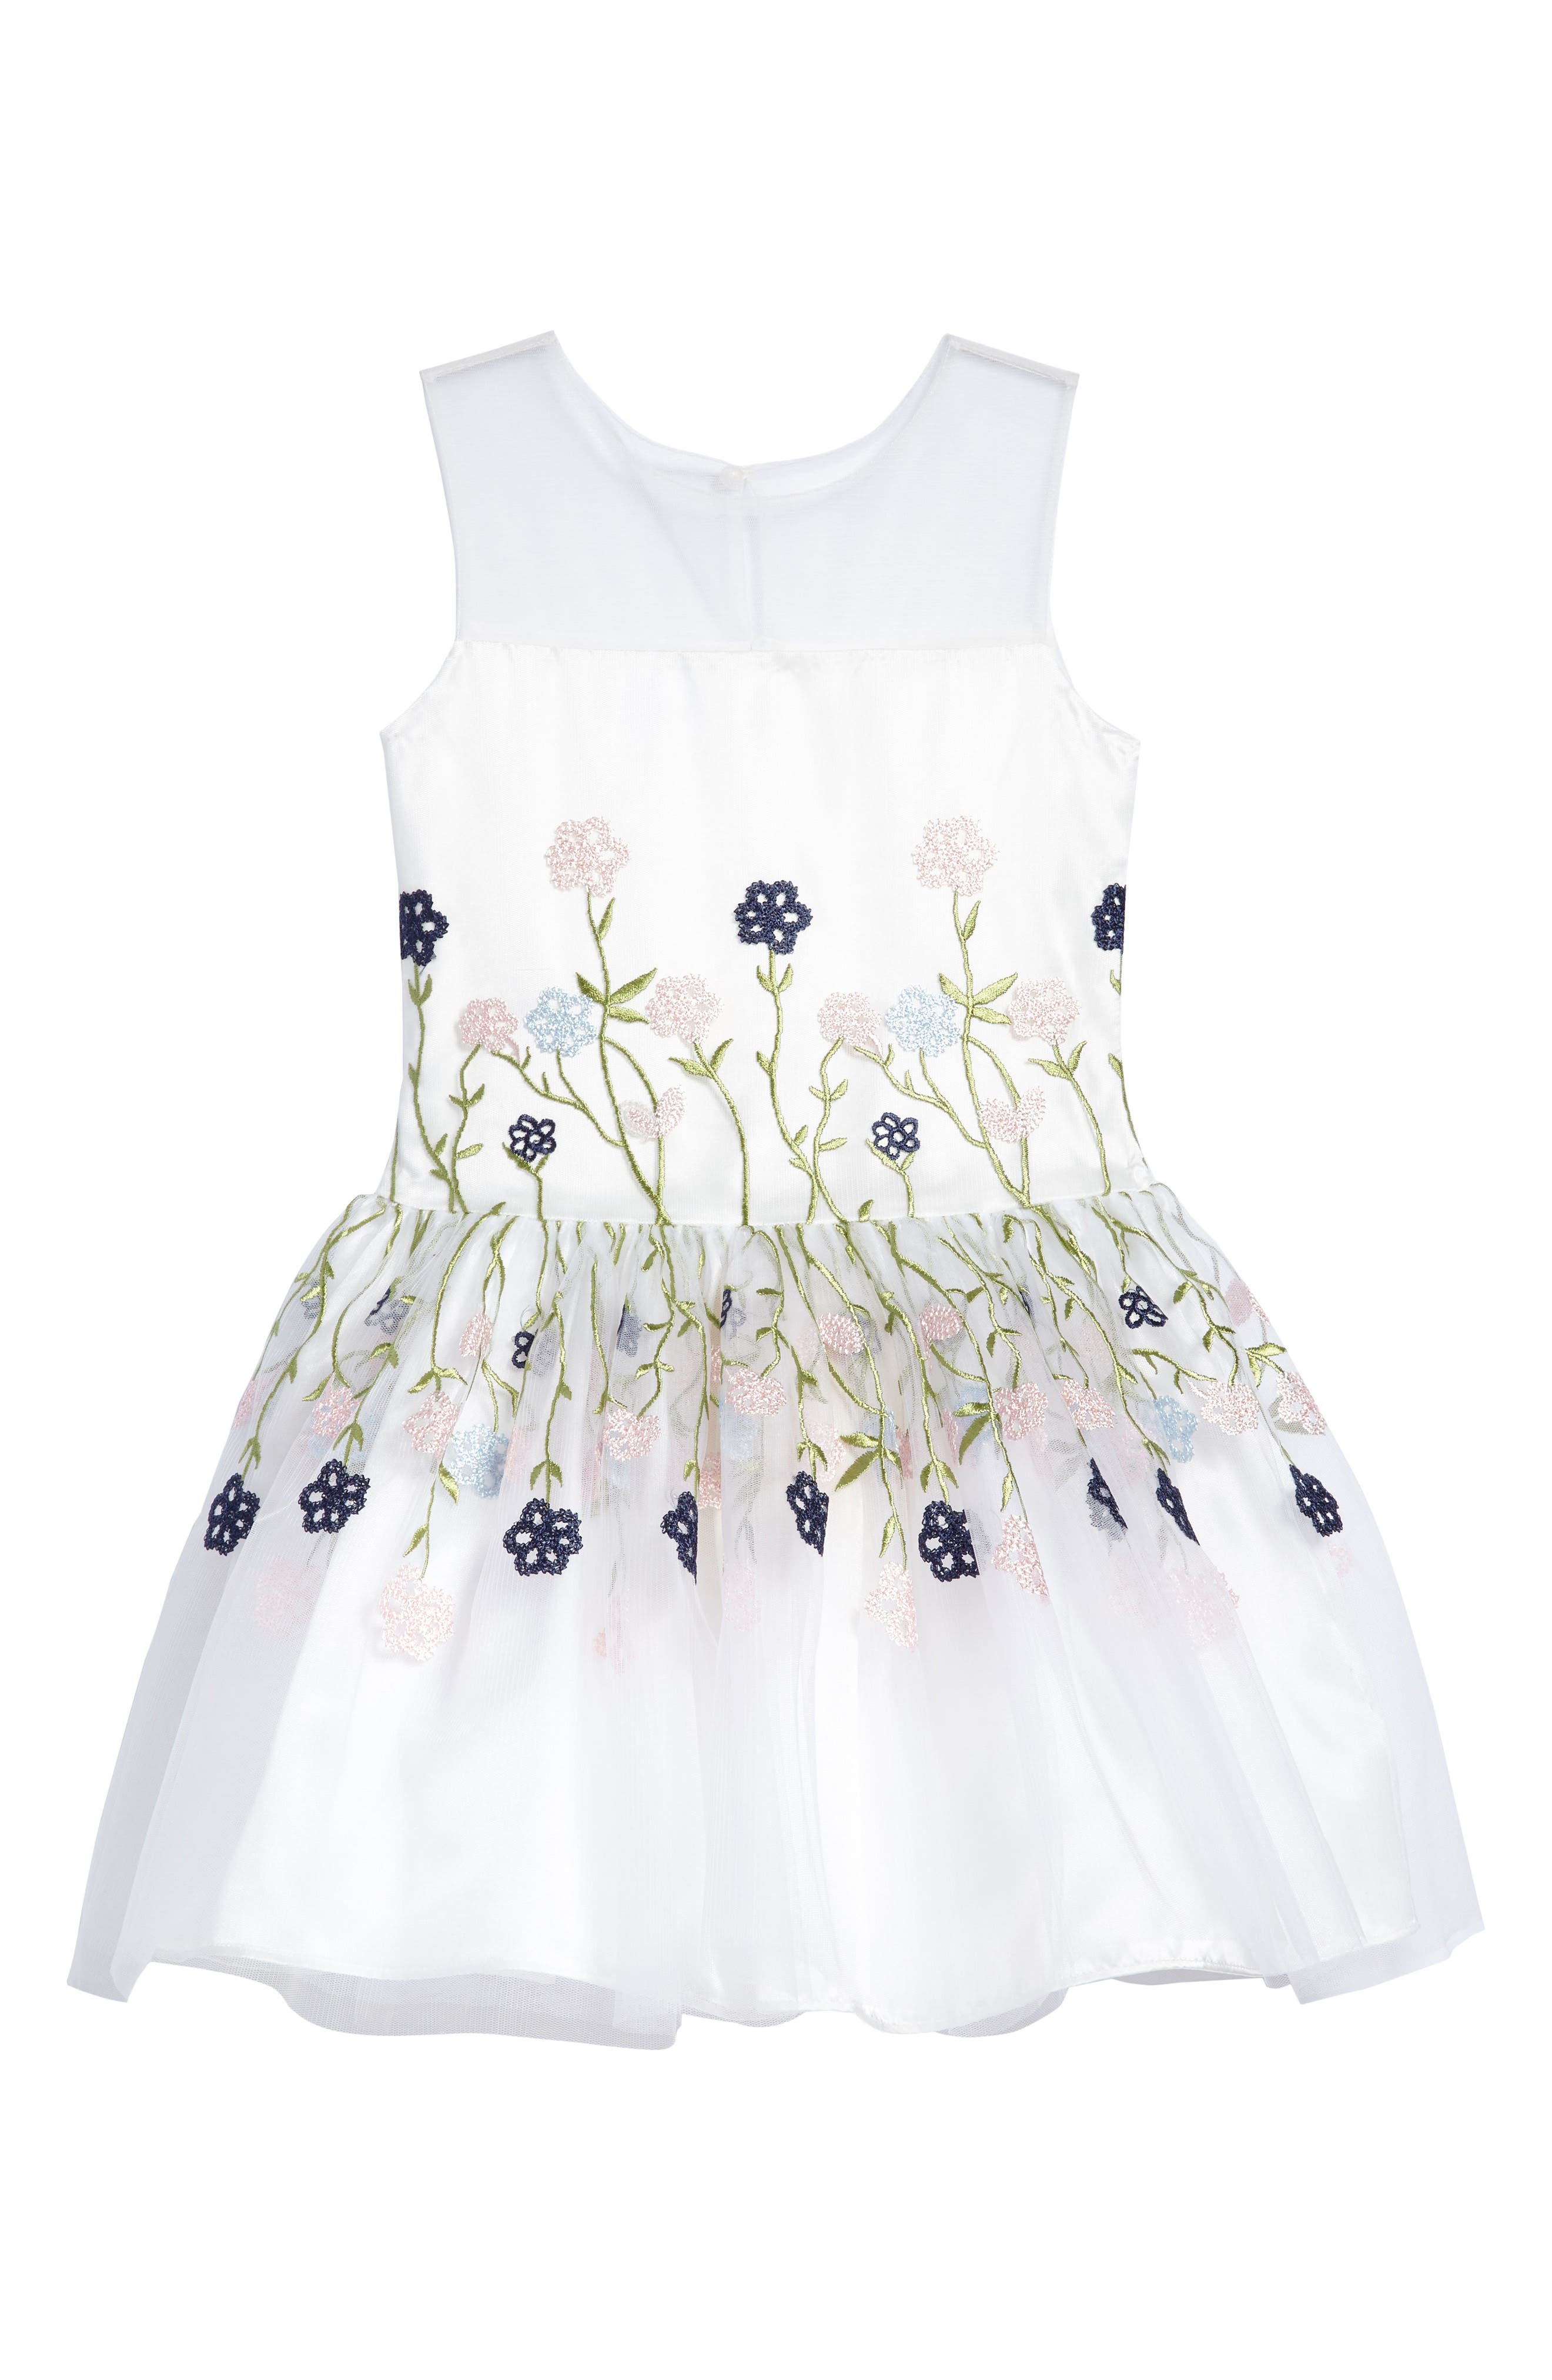 Floral Embroidered Dress,                             Main thumbnail 1, color,                             100